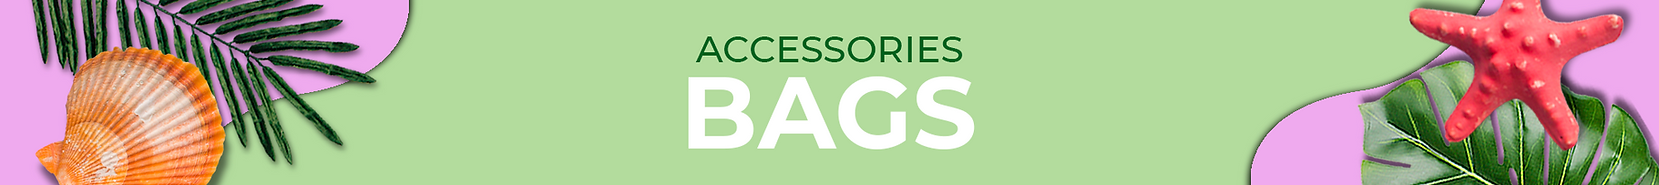 accessories_bags.png